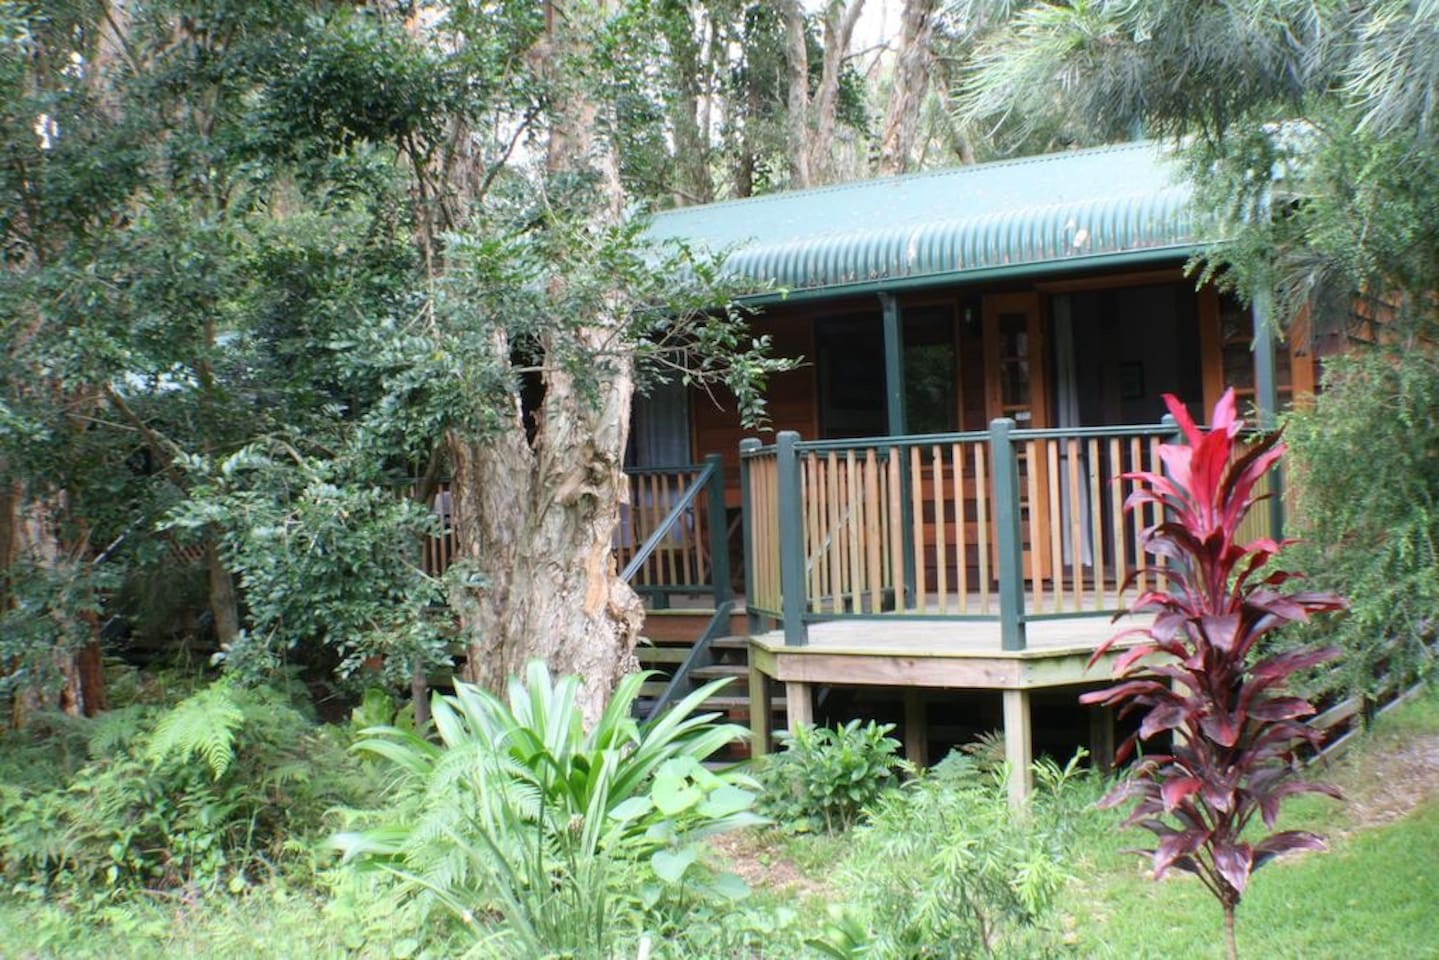 Secluded in the rainforest